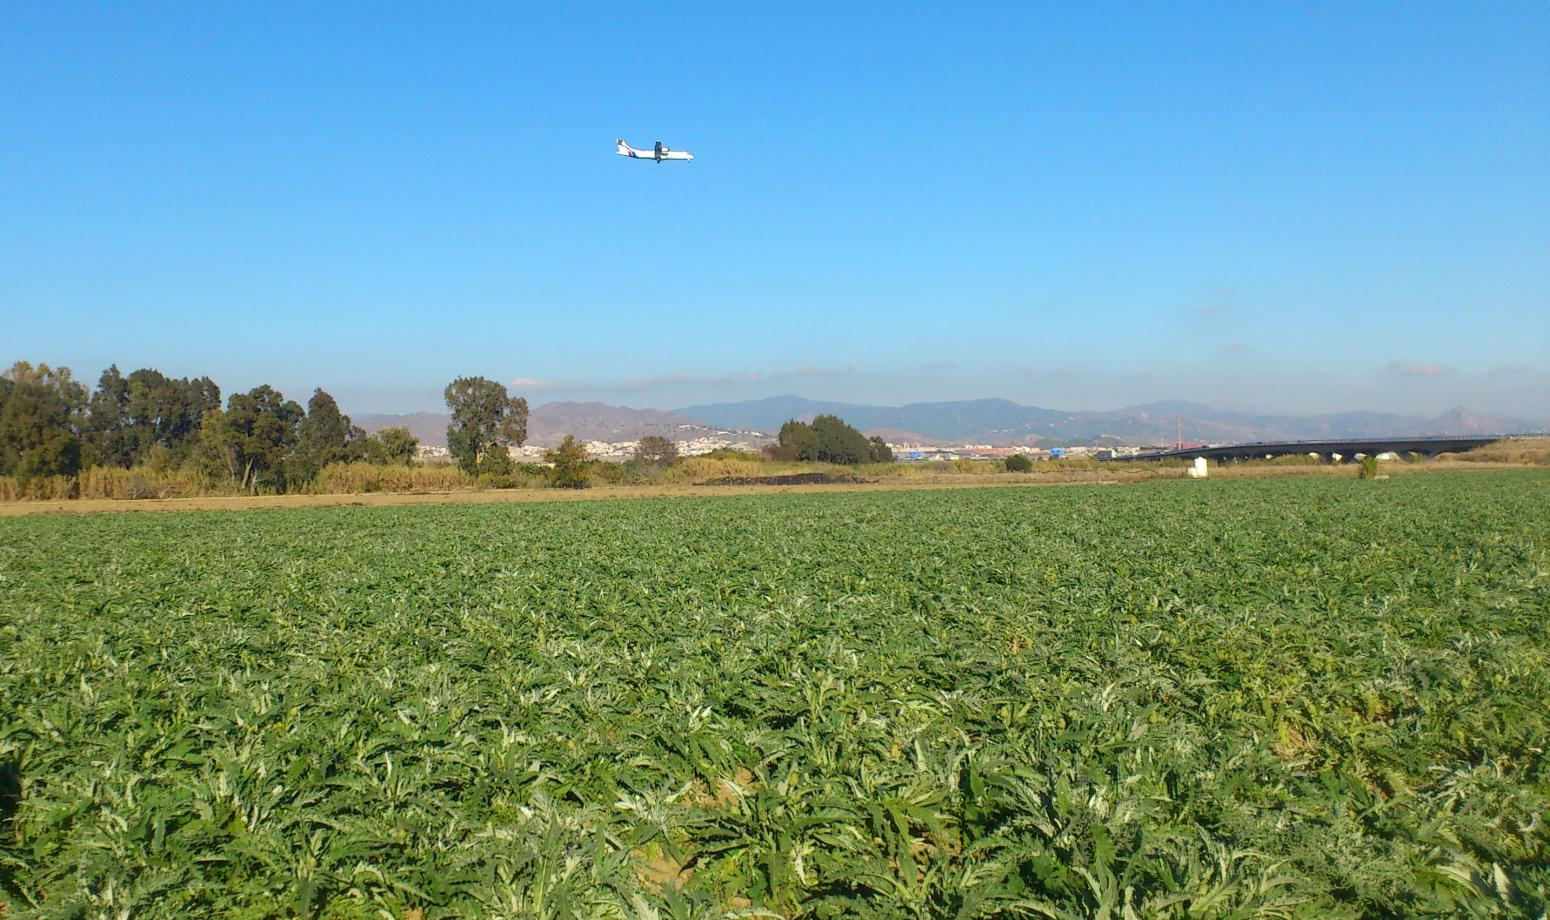 GR 249. Stage 35: Alhaurín de la Torre - Málaga. A plane maneuvering to land, on irrigated crops